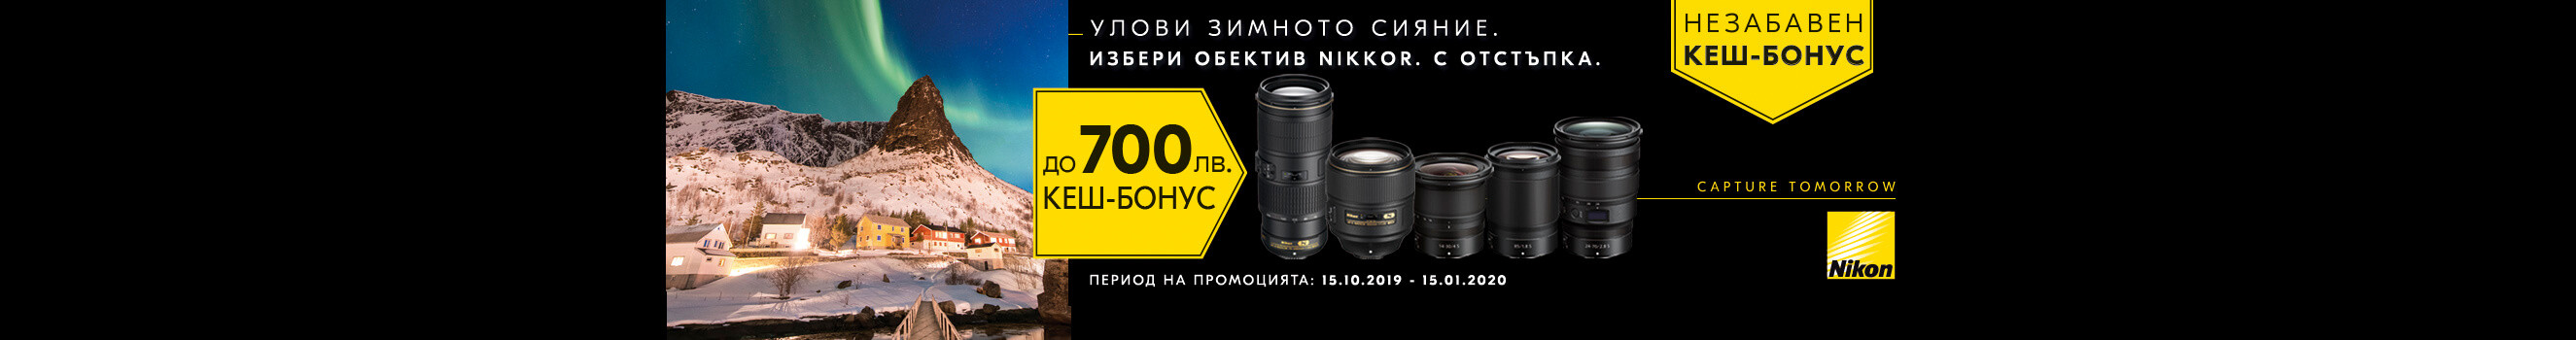 Nikon Cameras and Lenses with up to 700 BGN Discount